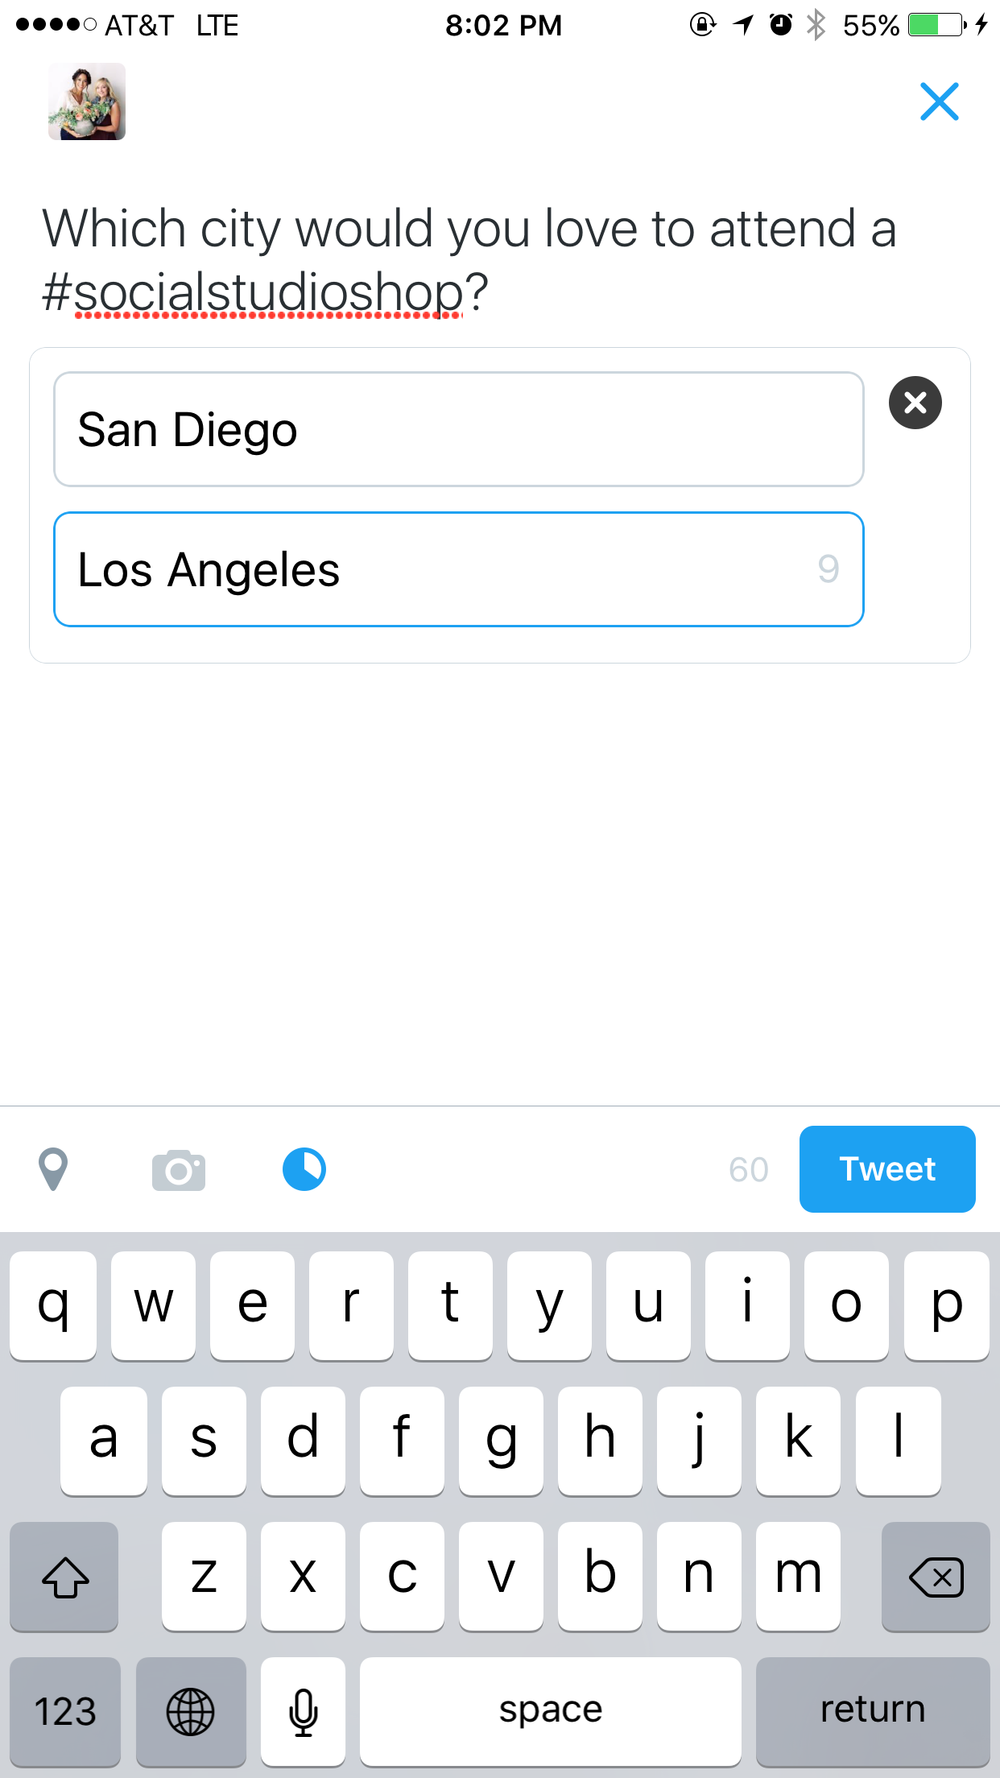 Getting Started With Twitter Polls via @social_studio